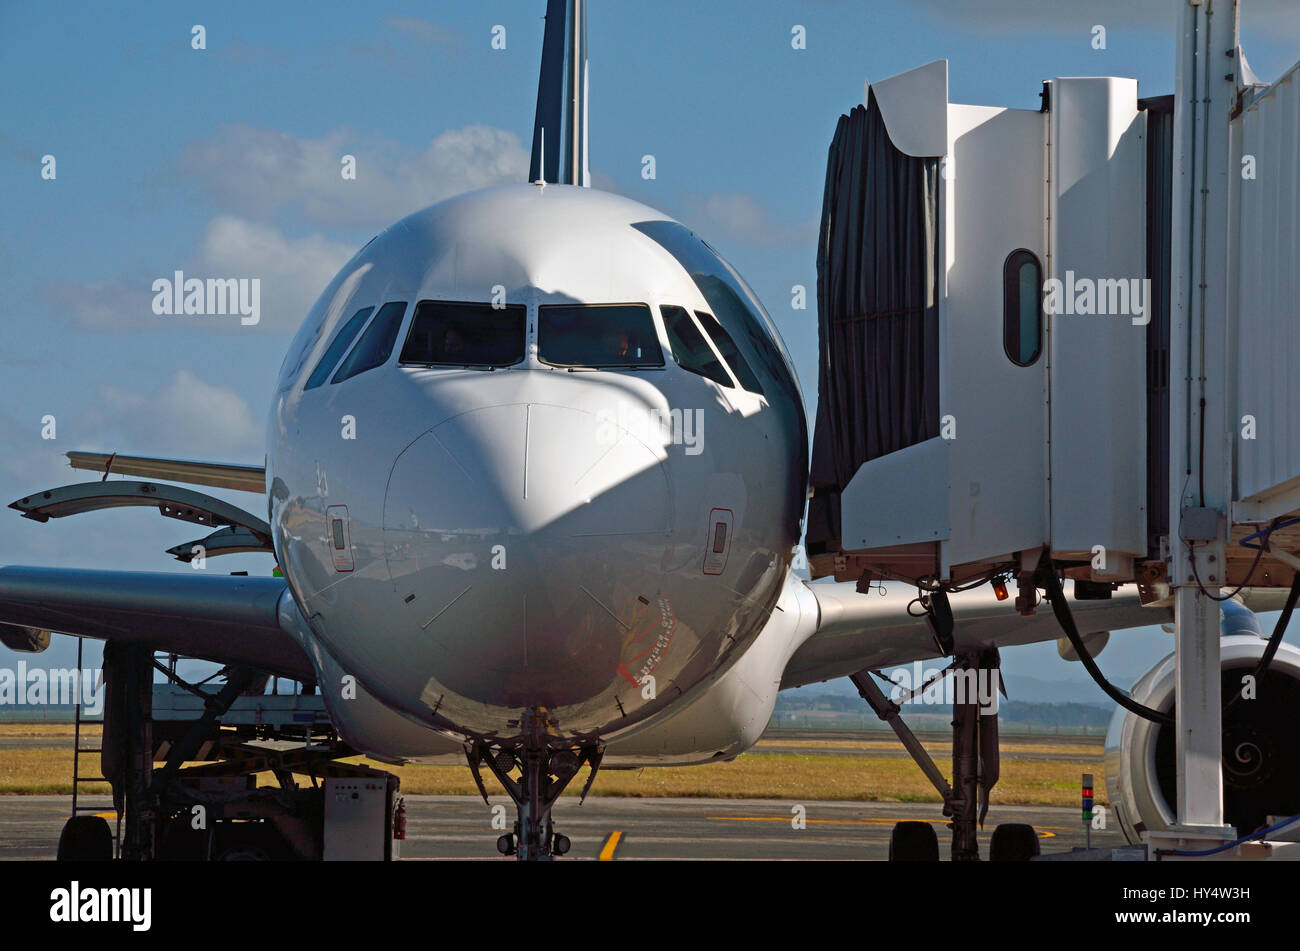 the walkway closes in on a passenger jet as passengers wait to embark. - Stock Image